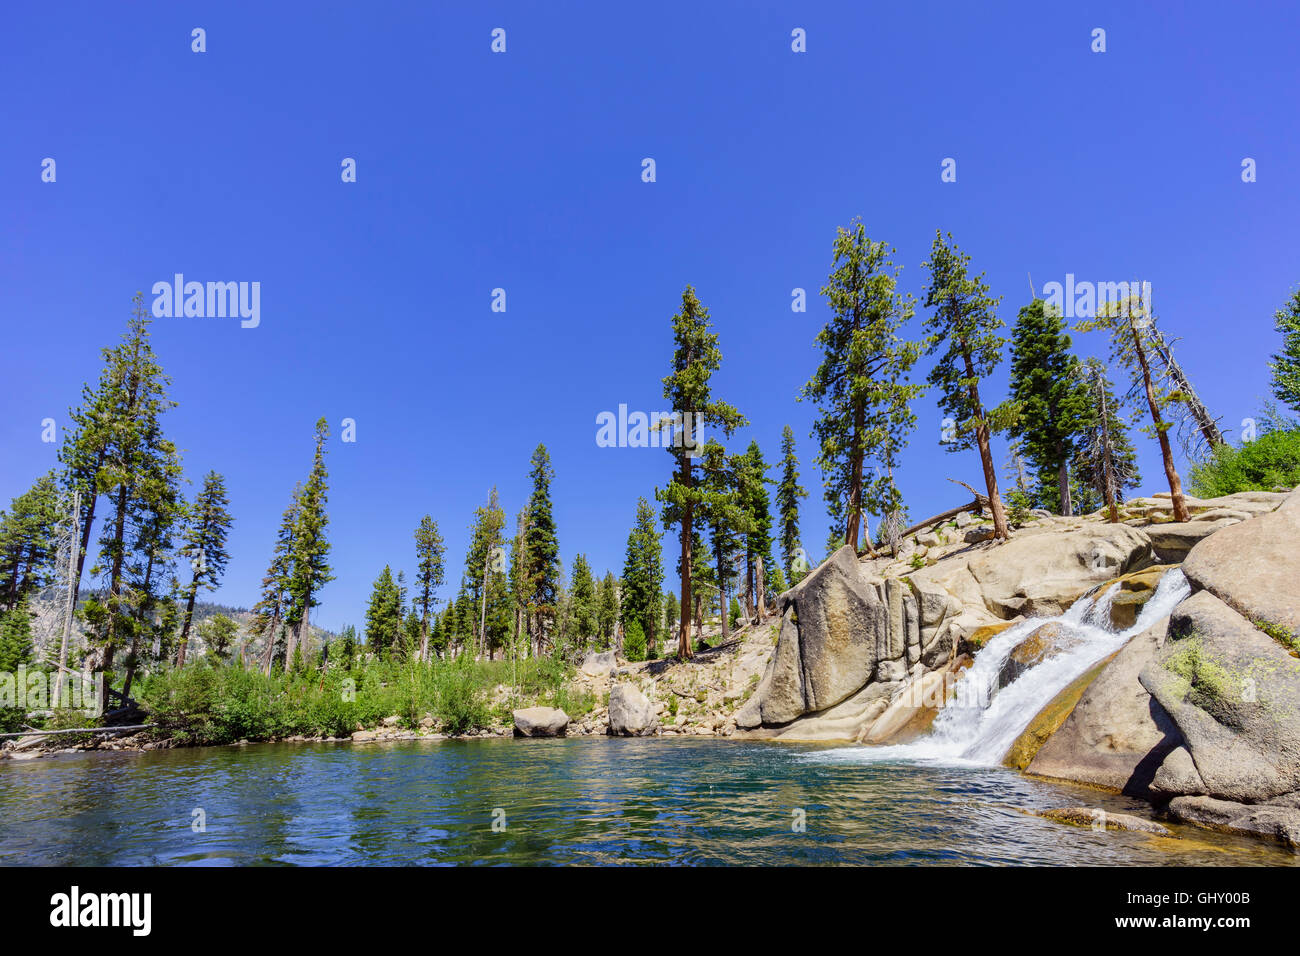 The beautiful Lower Fall in Devils Postpile National Monument - Stock Image